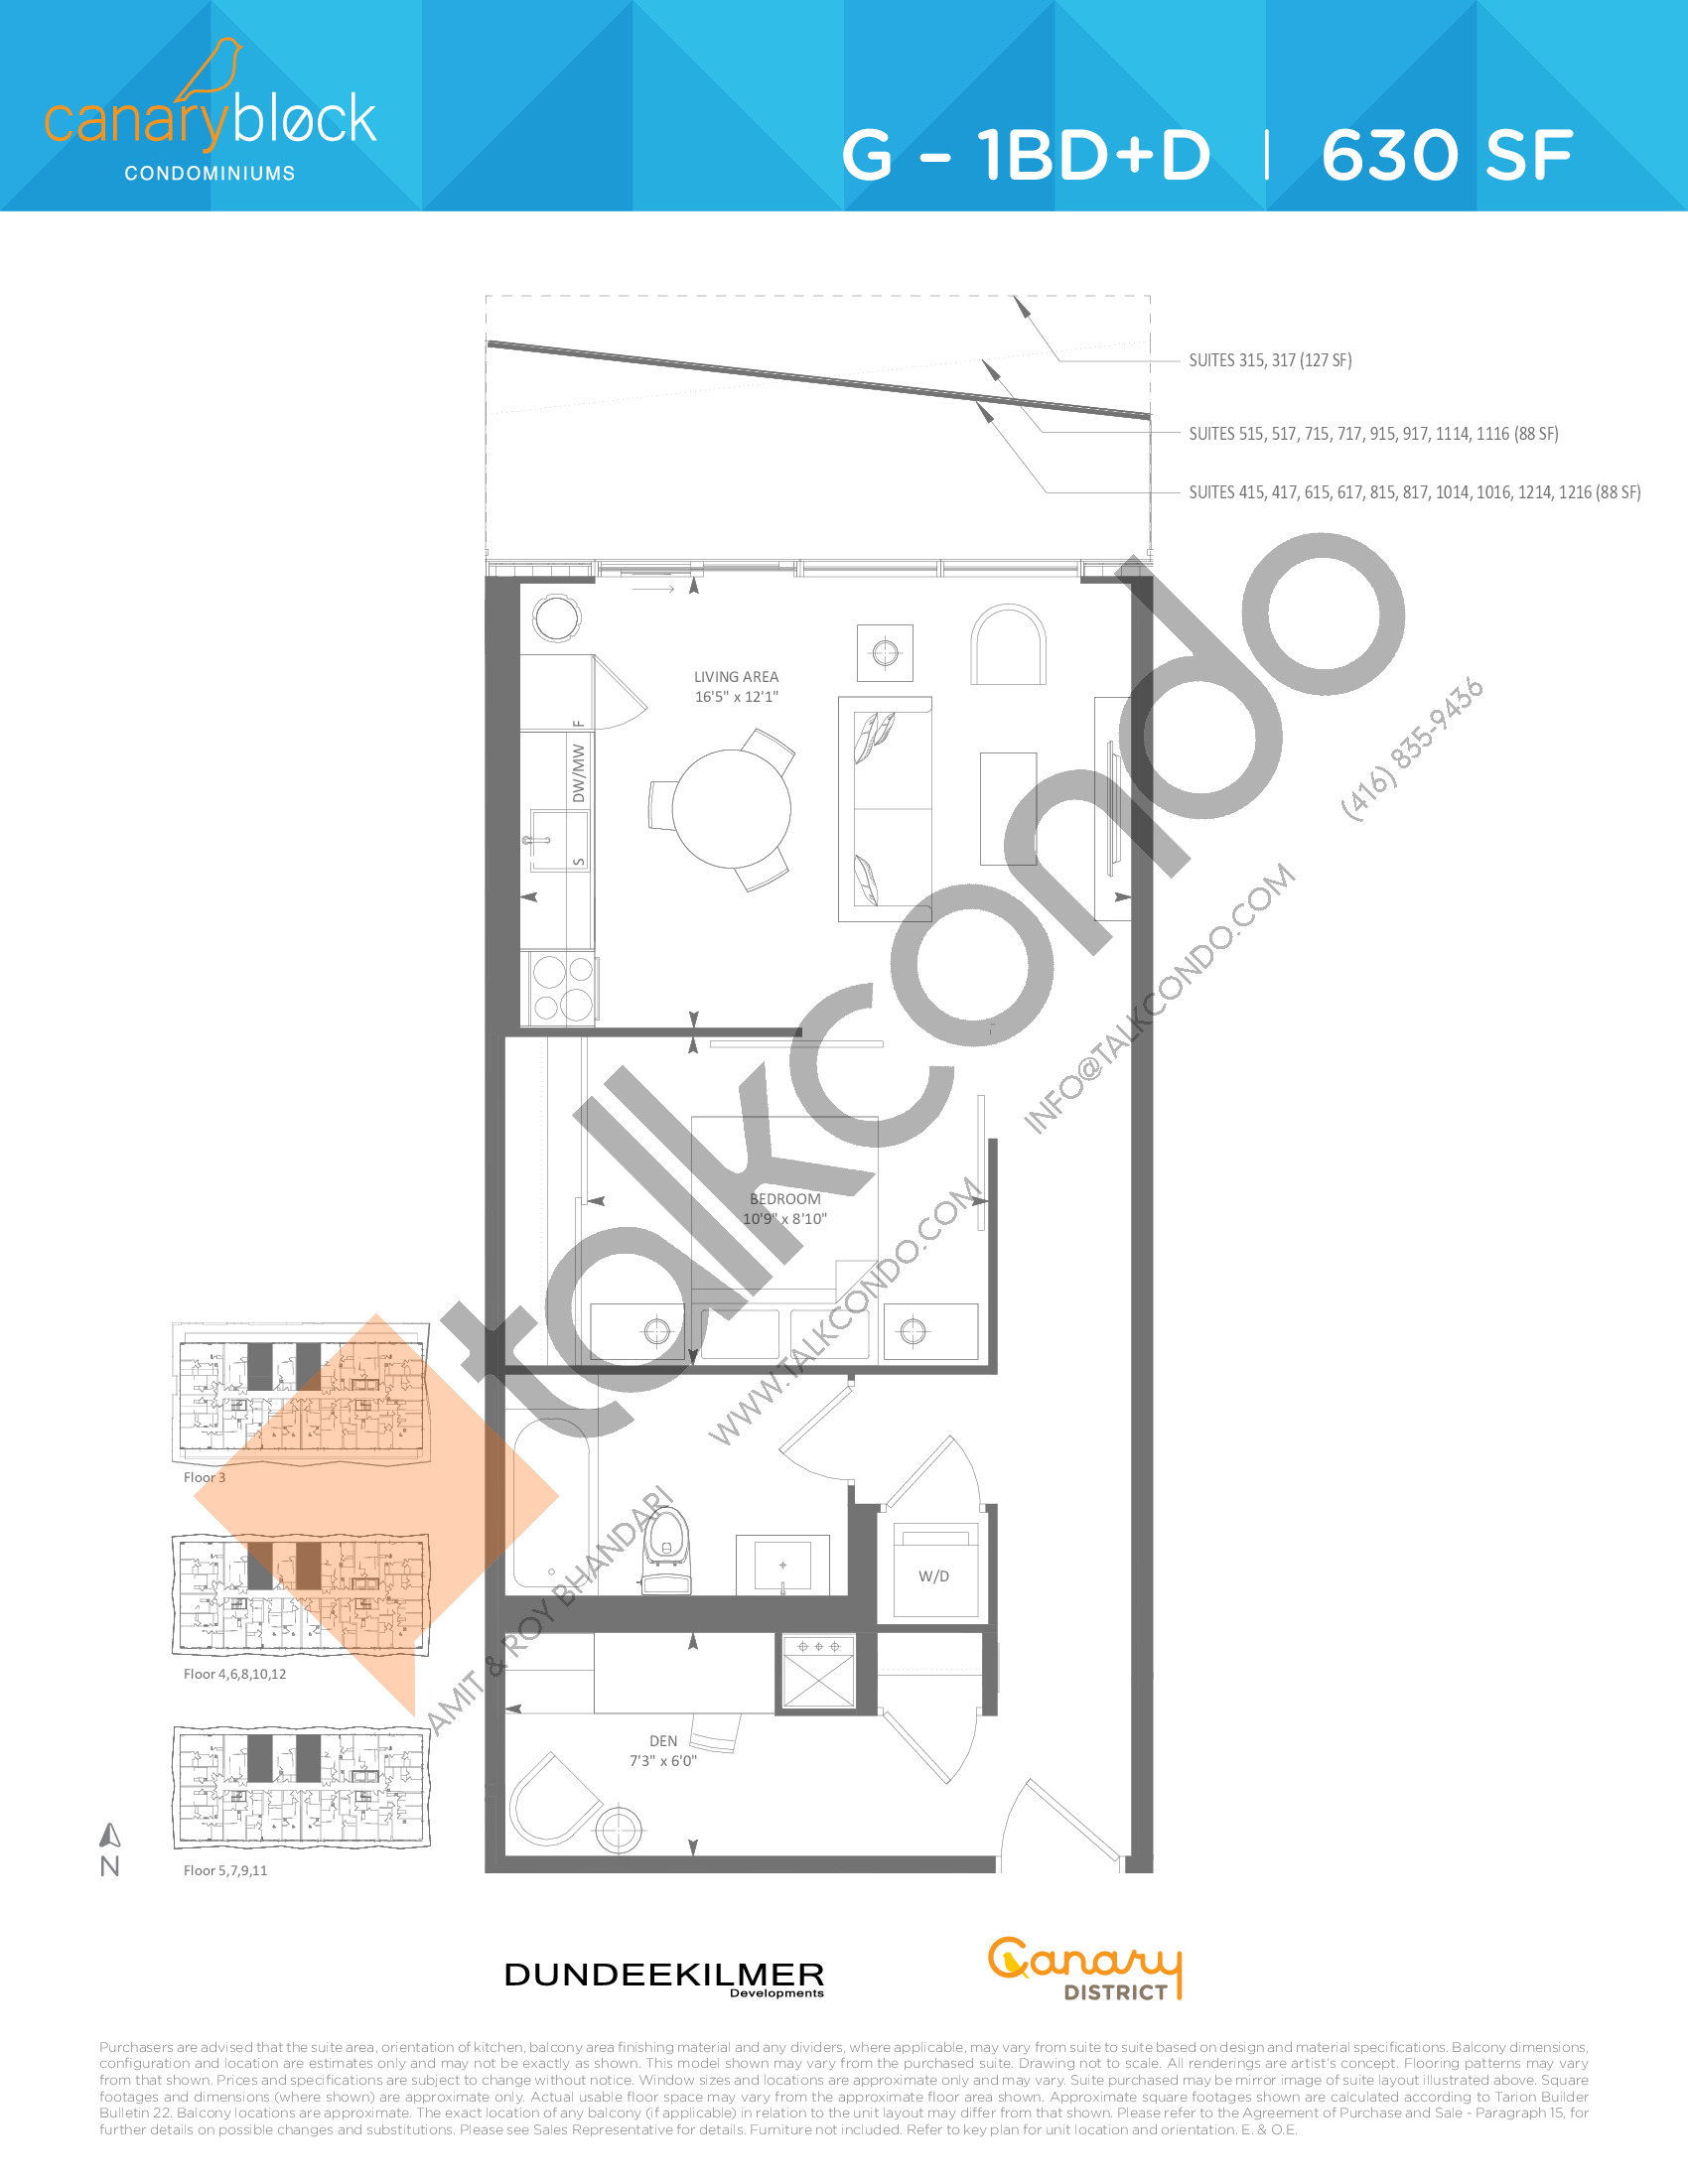 G - 1BD+D Floor Plan at Canary Block Condos - 630 sq.ft